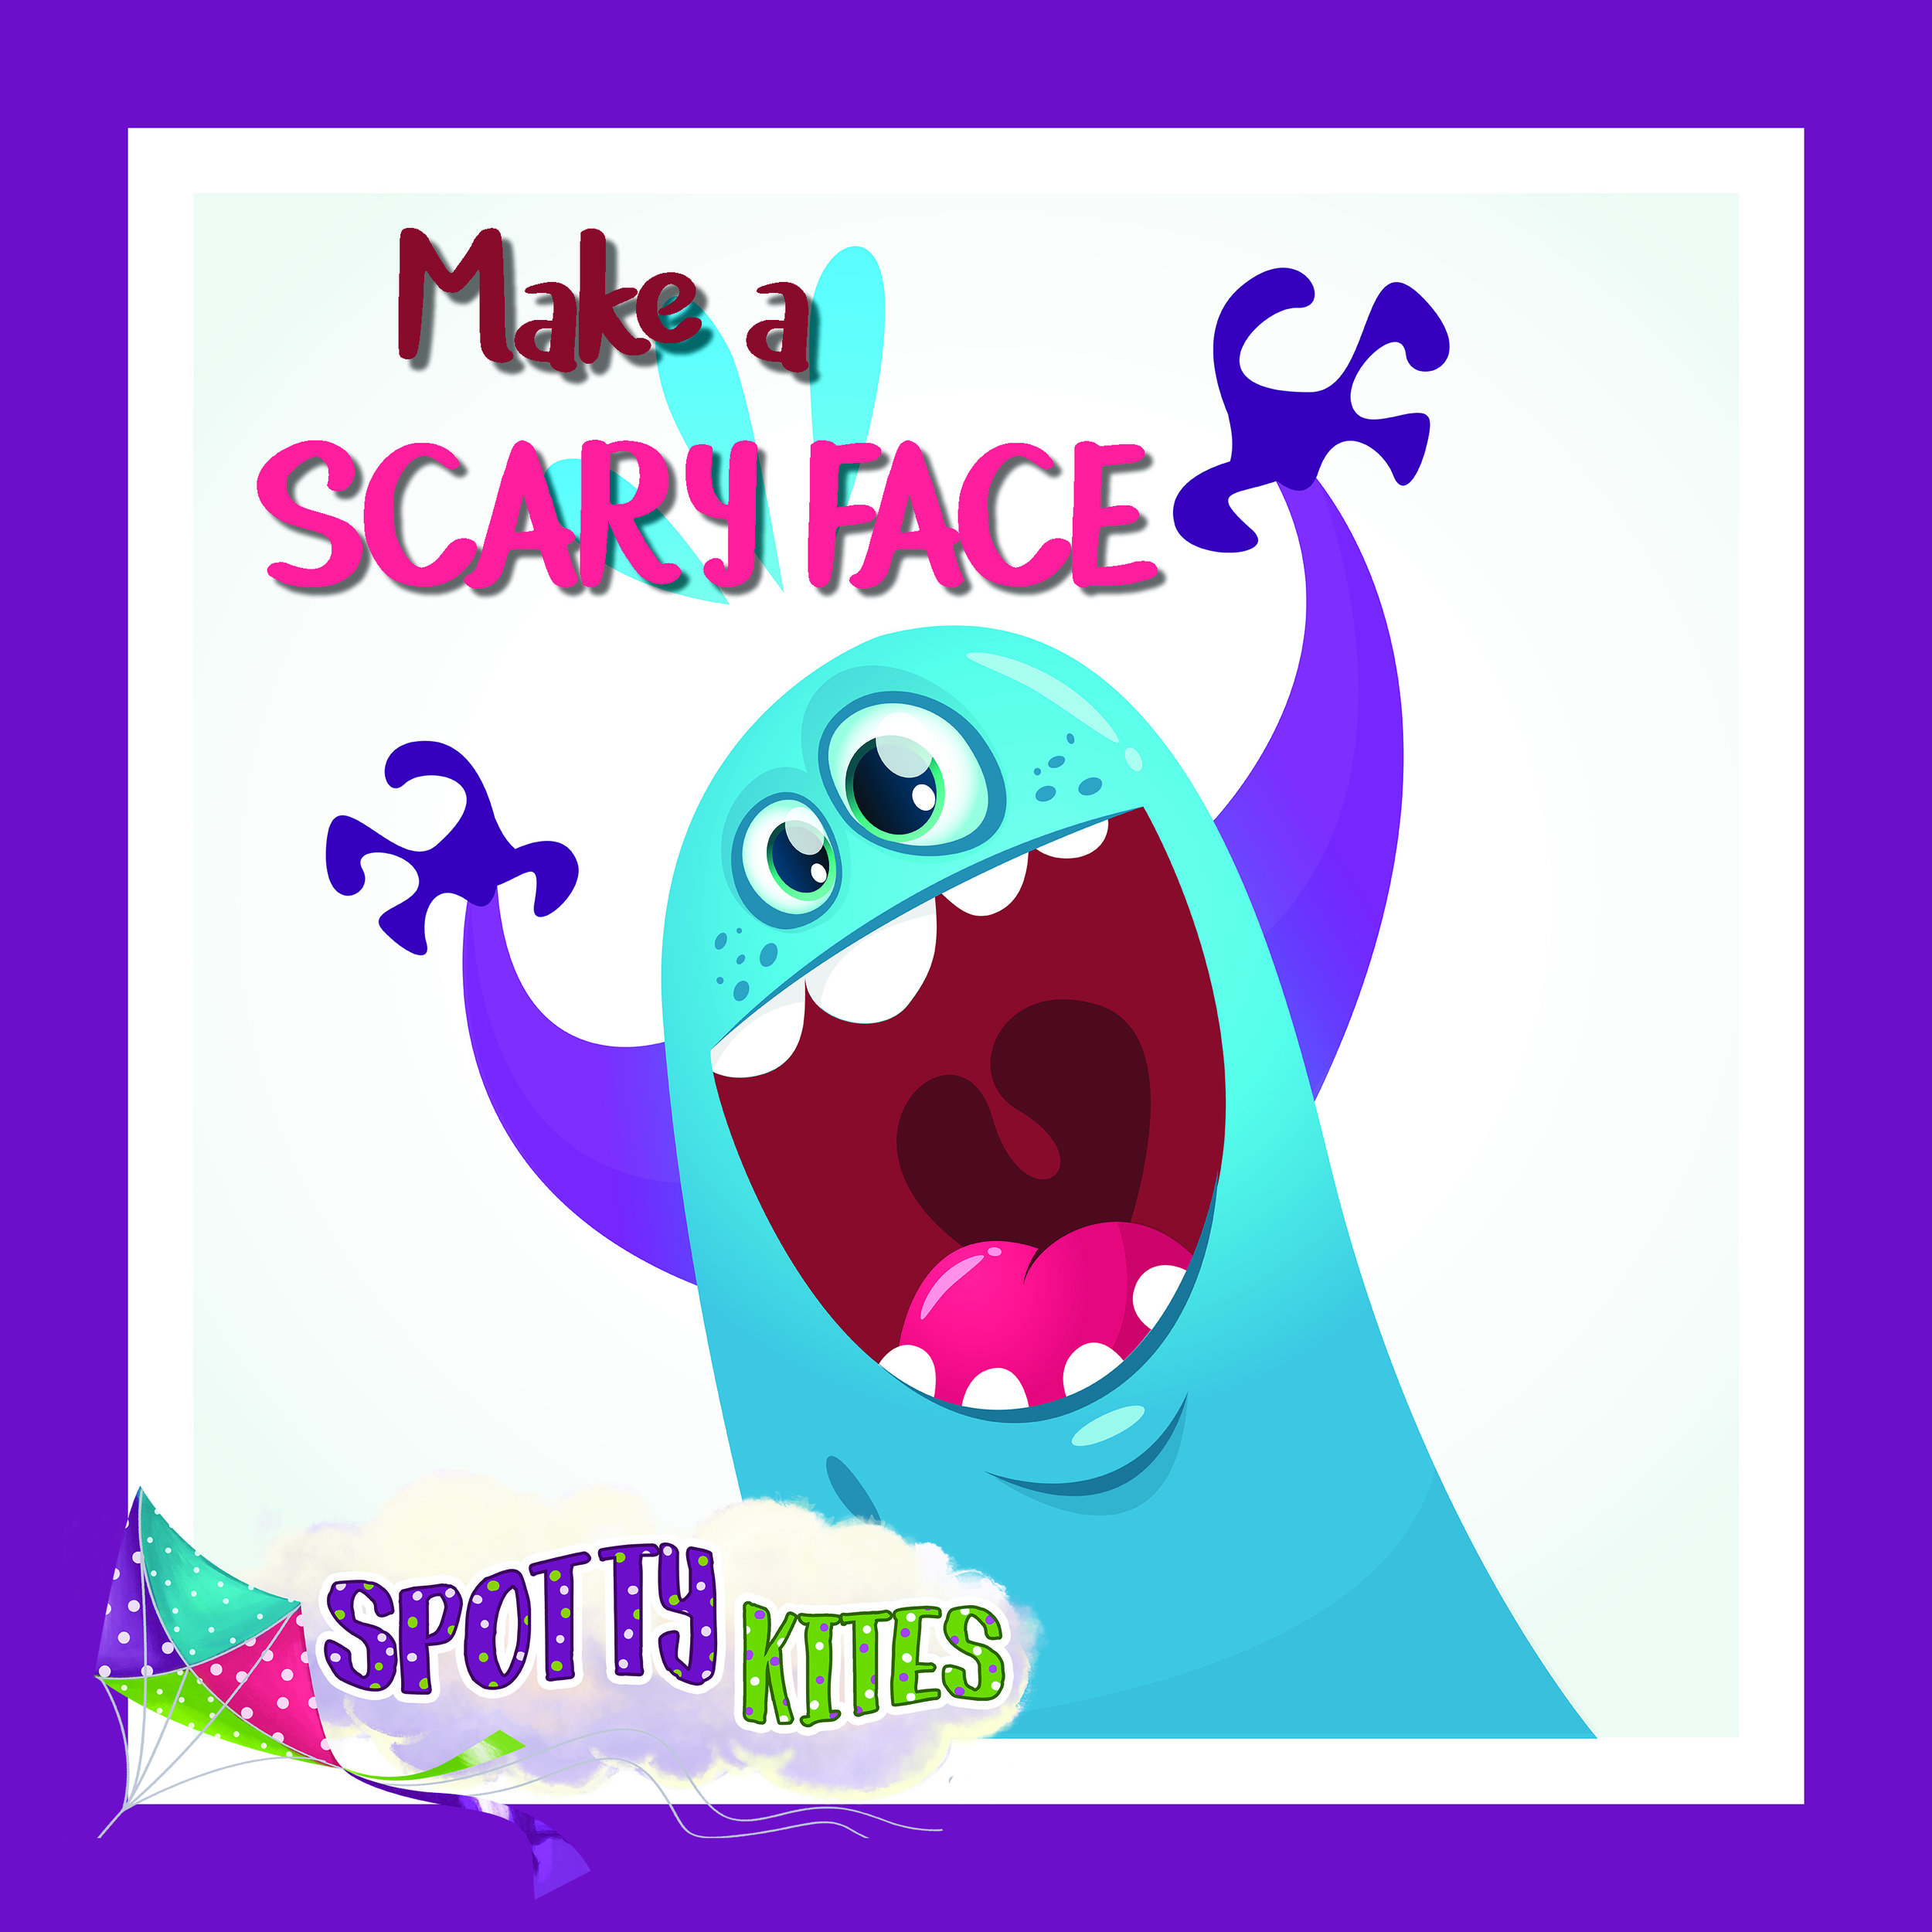 Spotty Kites Make a Scary Face.jpg